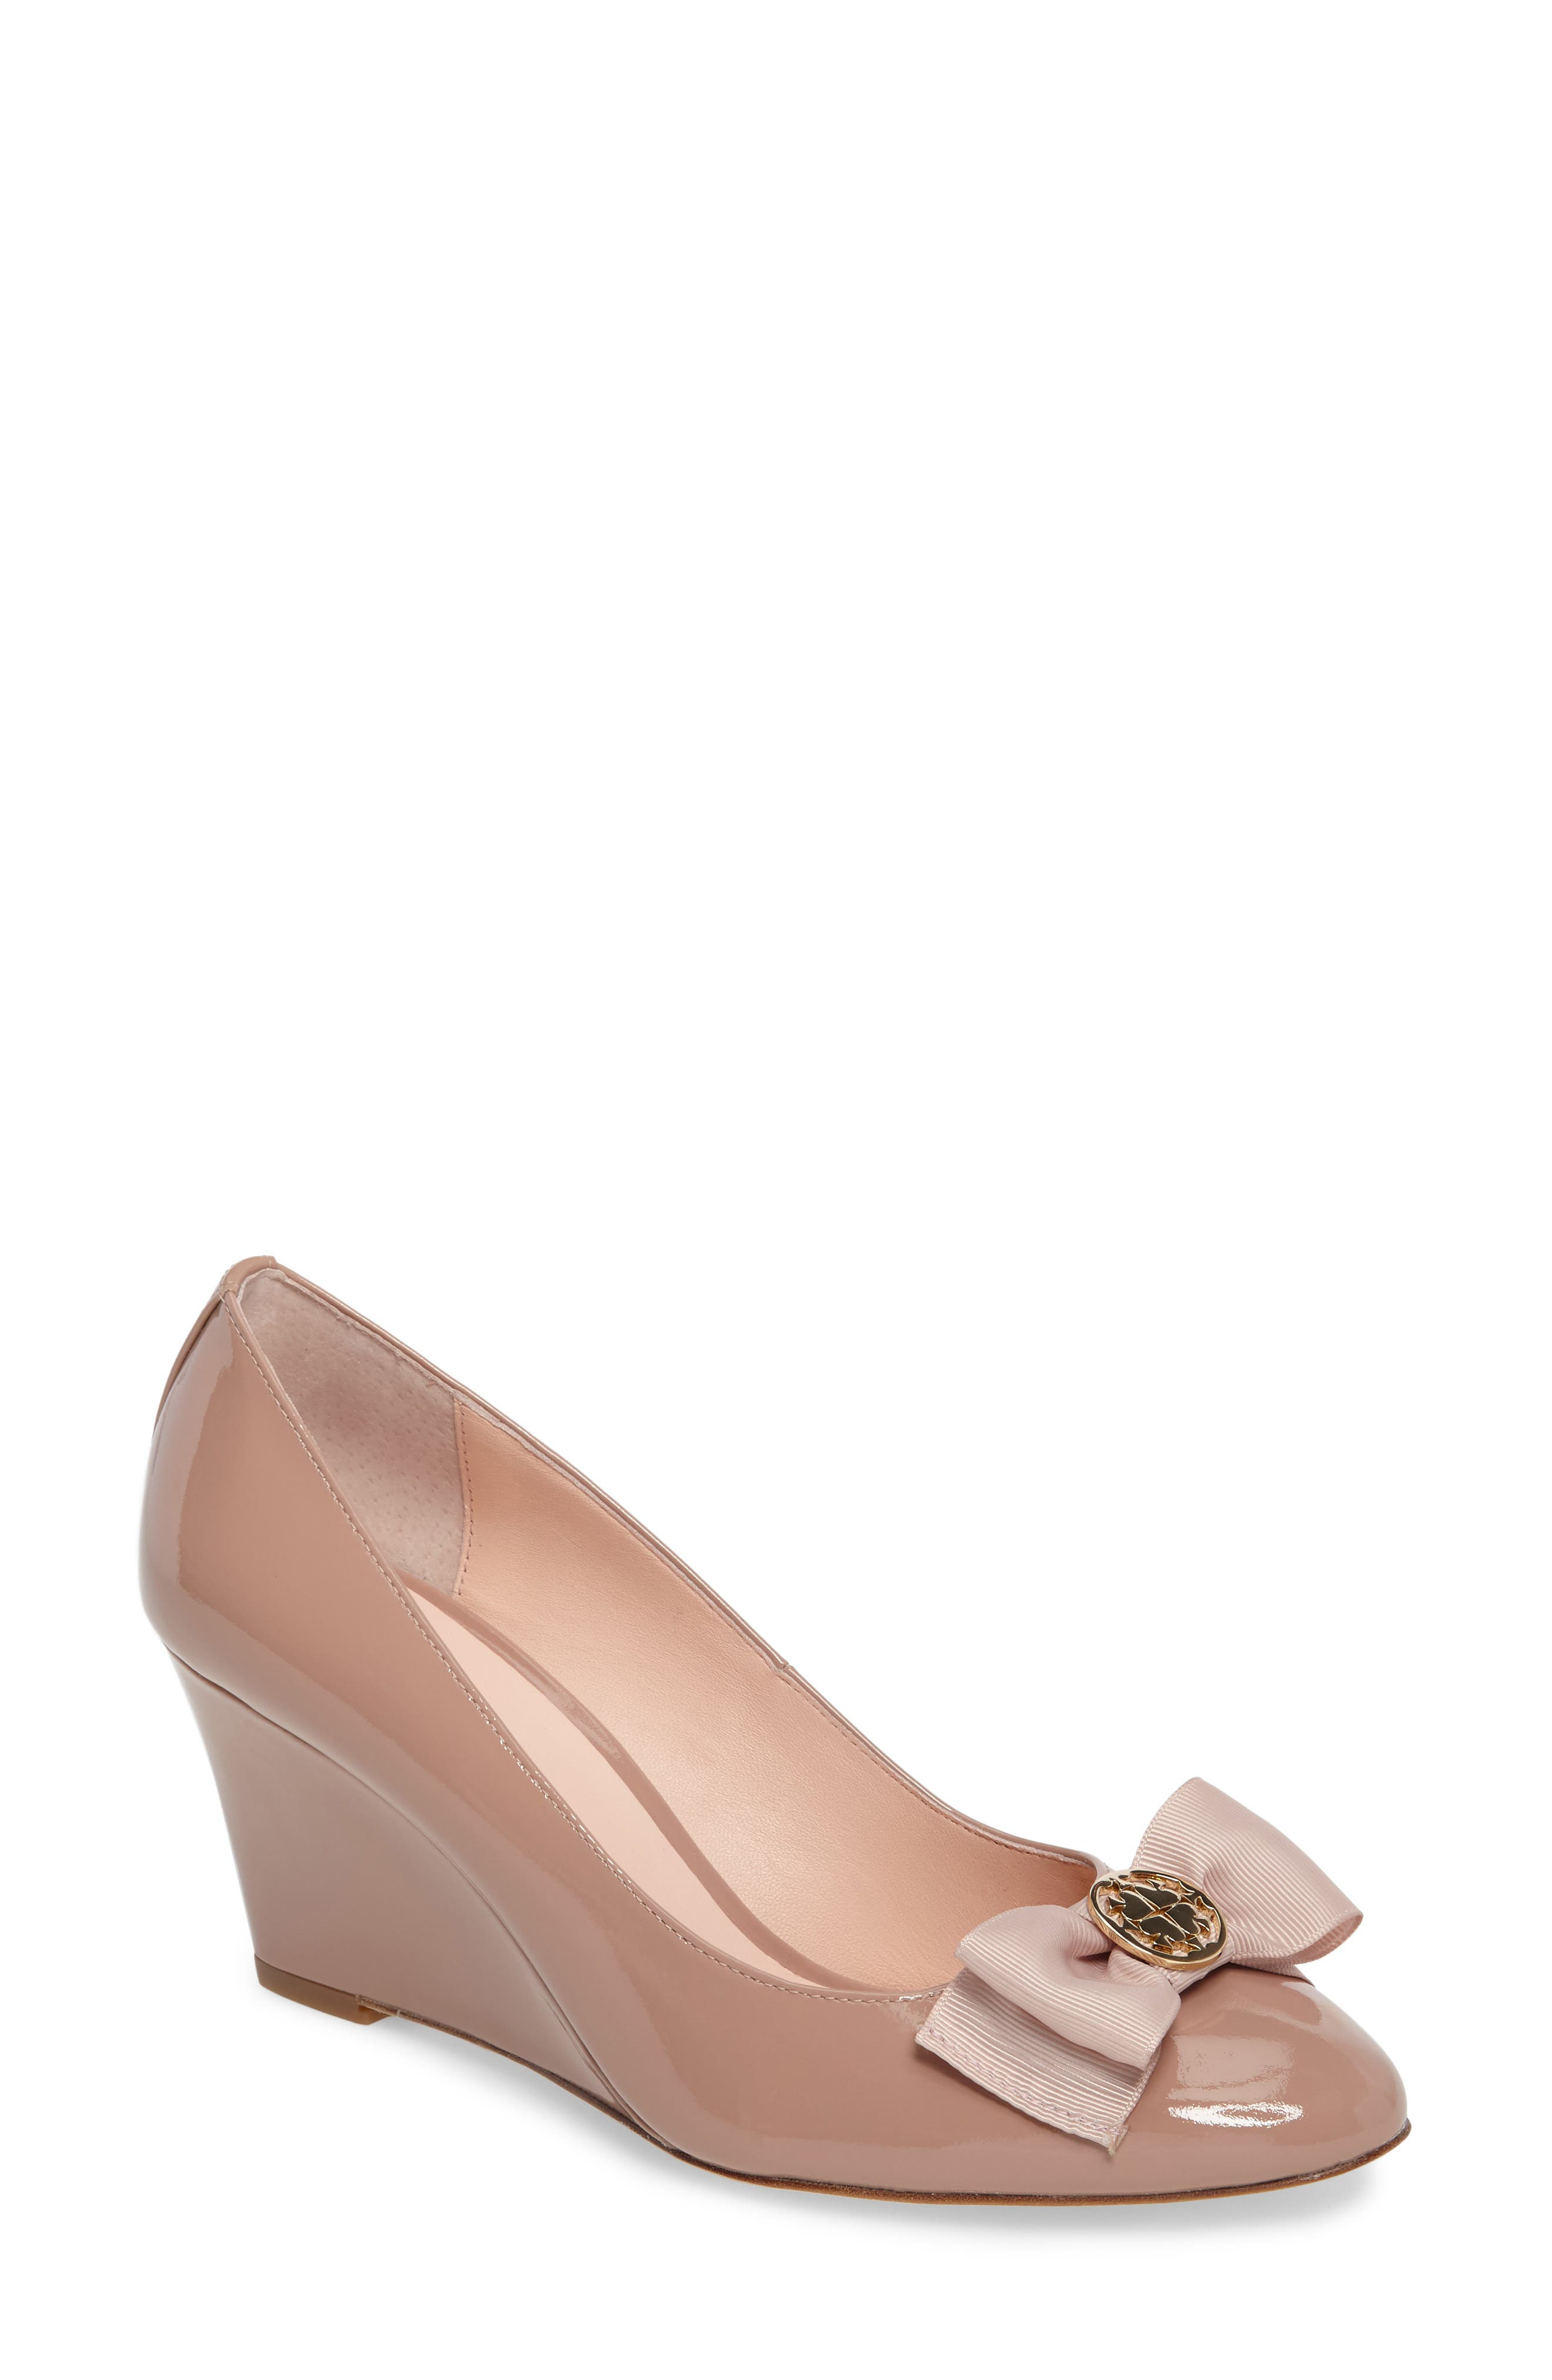 Alternate Image 1 Selected - kate spade new york wescott wedge pump (Women)